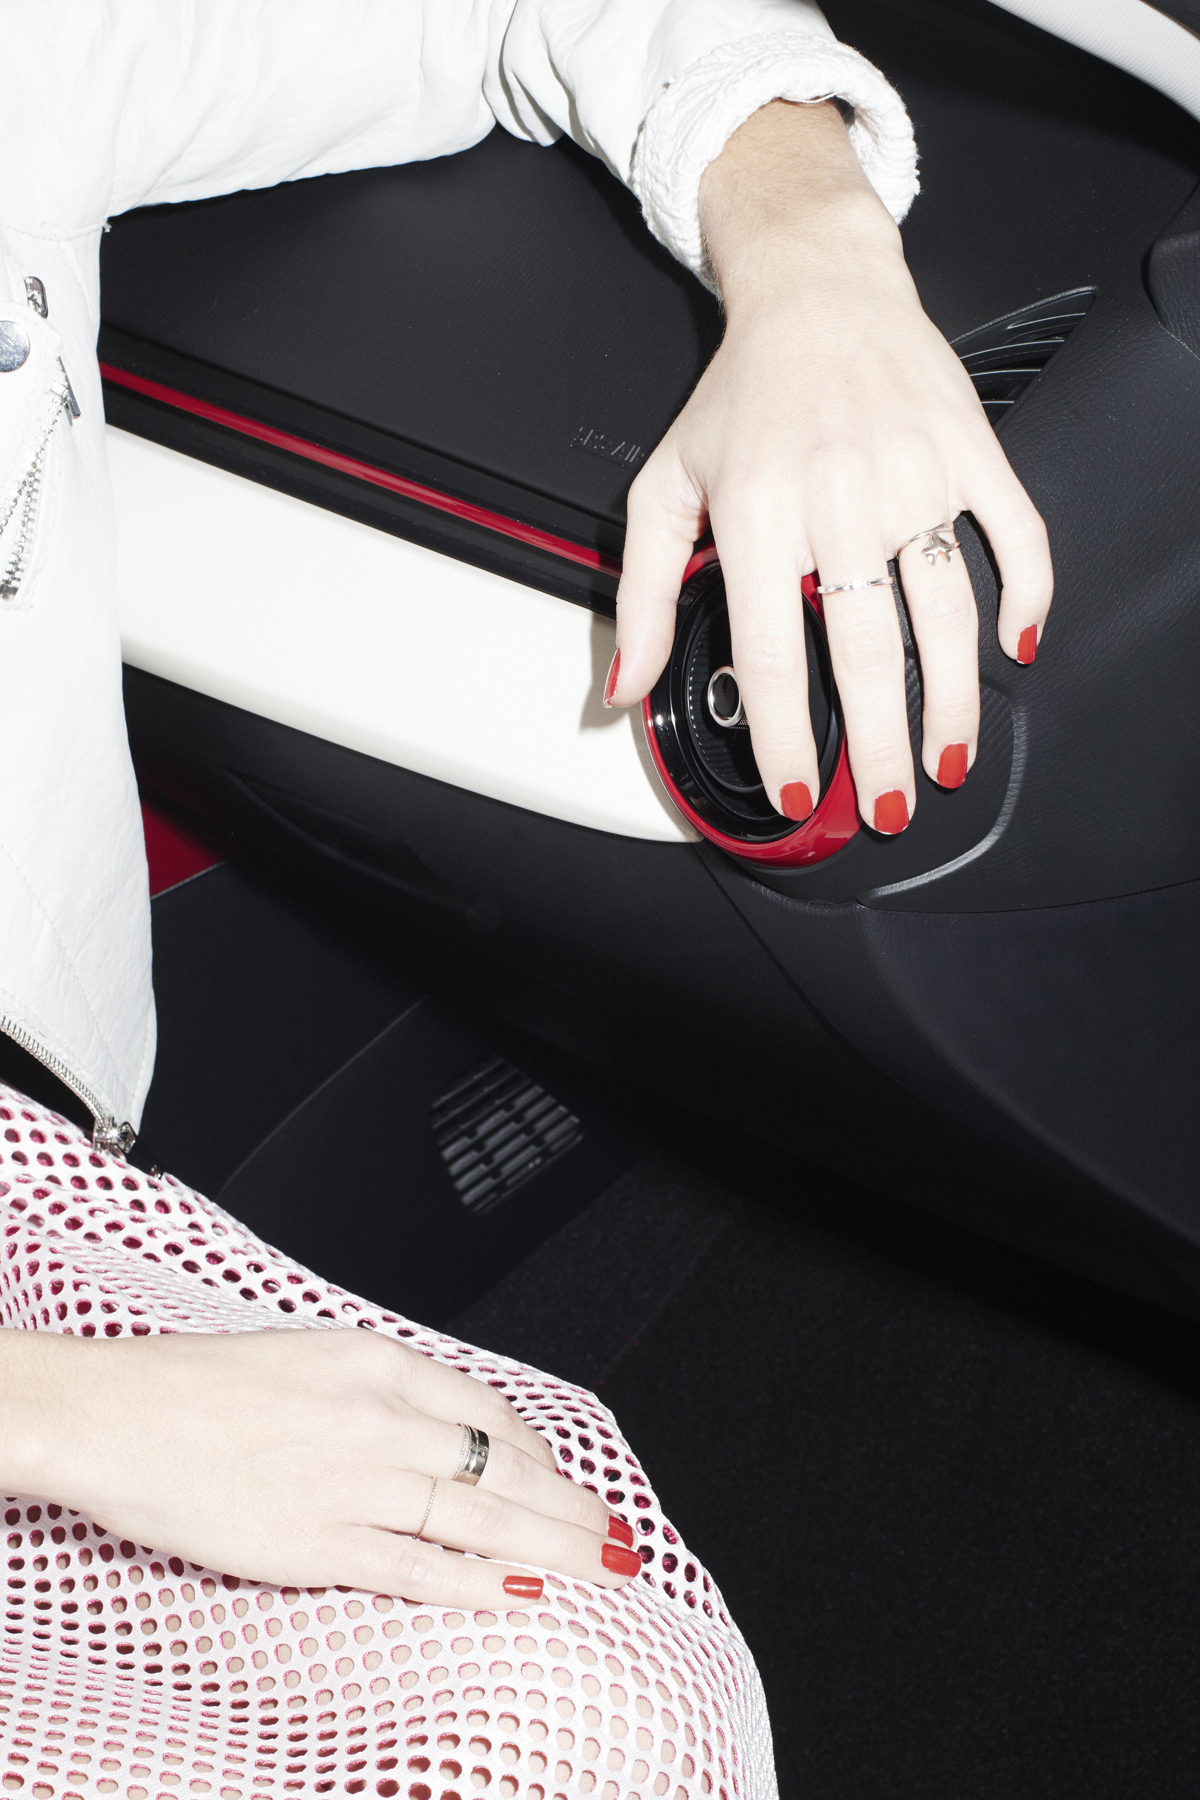 Campagne pour mazda ongle rouge